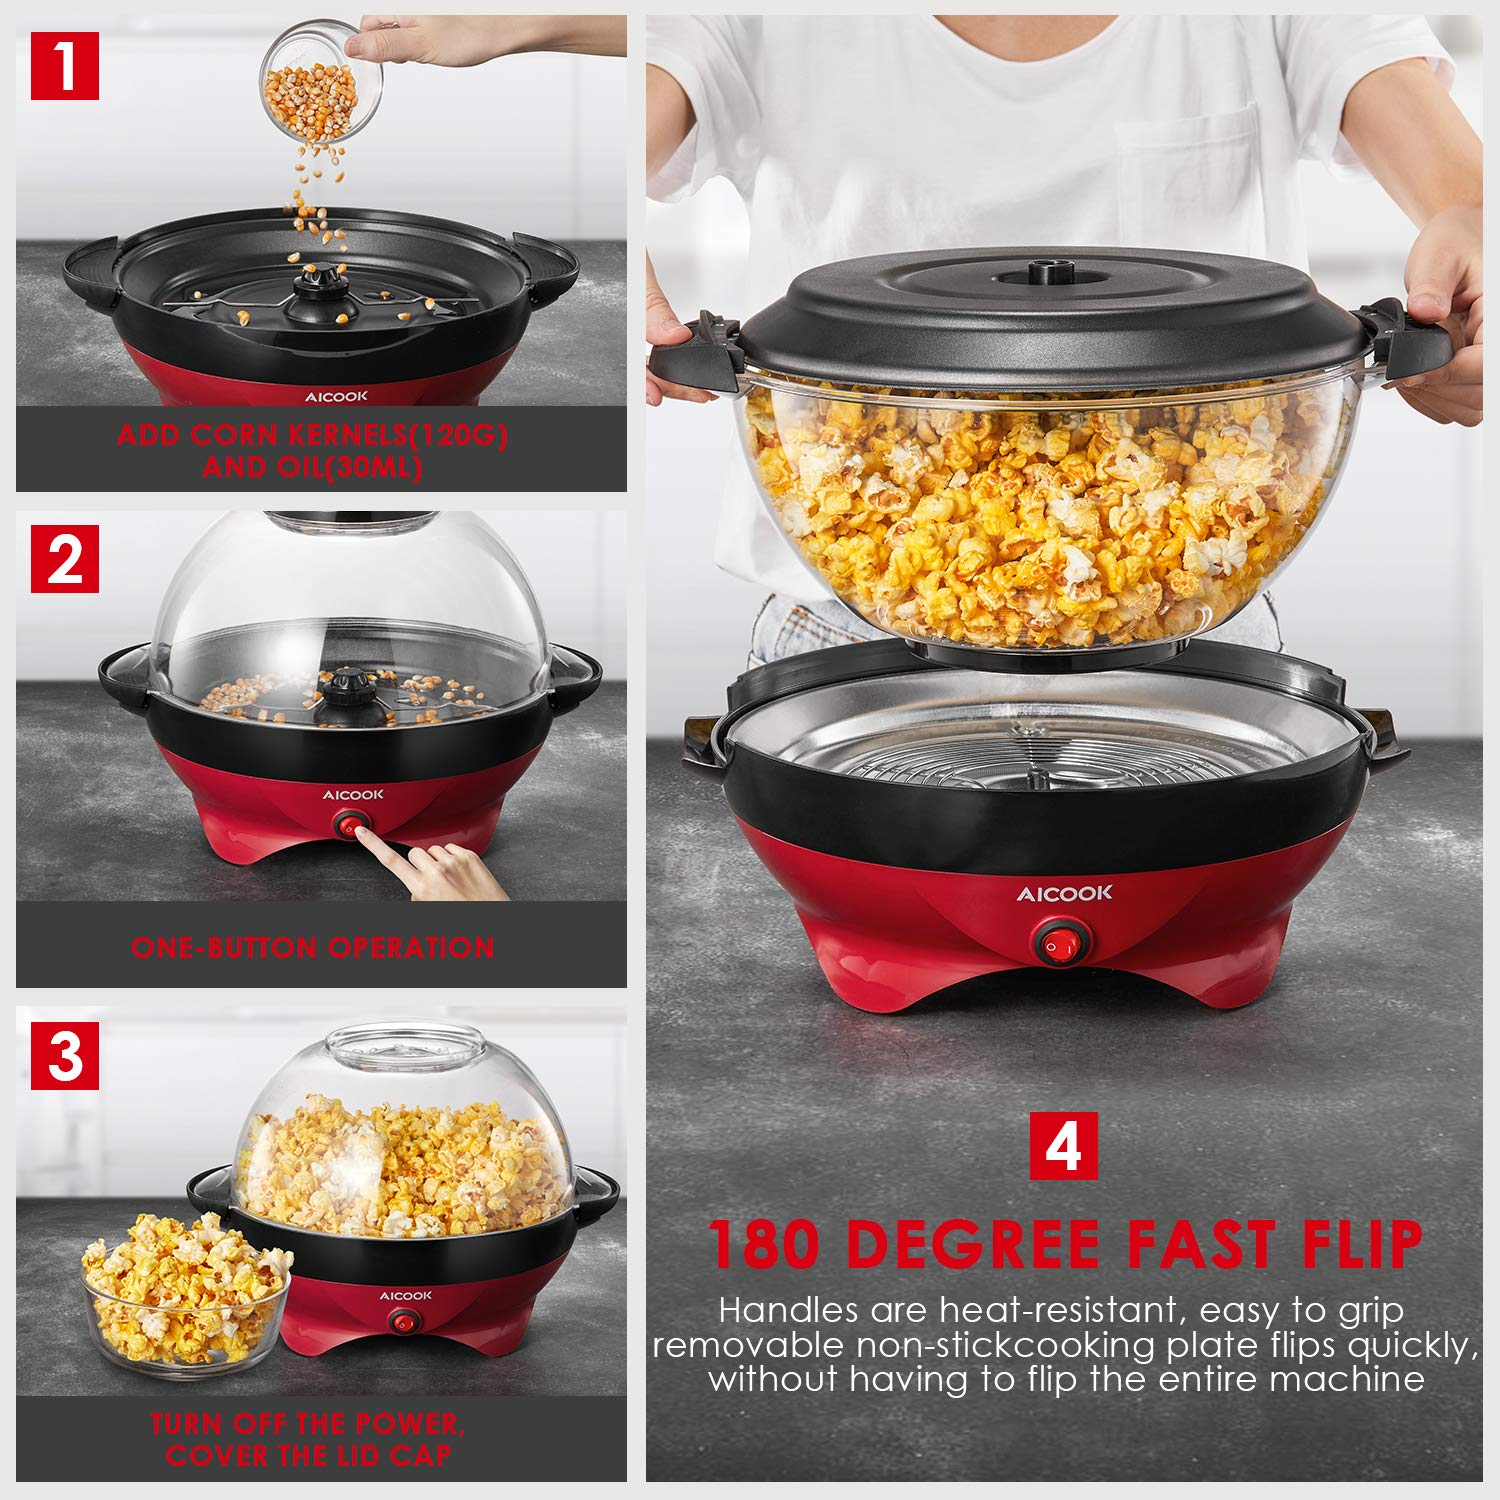 Popcorn Maker, AICOOK Electric Hot Oil Popcorn Popper Machine with Stirring Rod Offers Large Lid for Serving Bowl and Convenient Storage, 6-Quart, Red by AICOOK (Image #5)